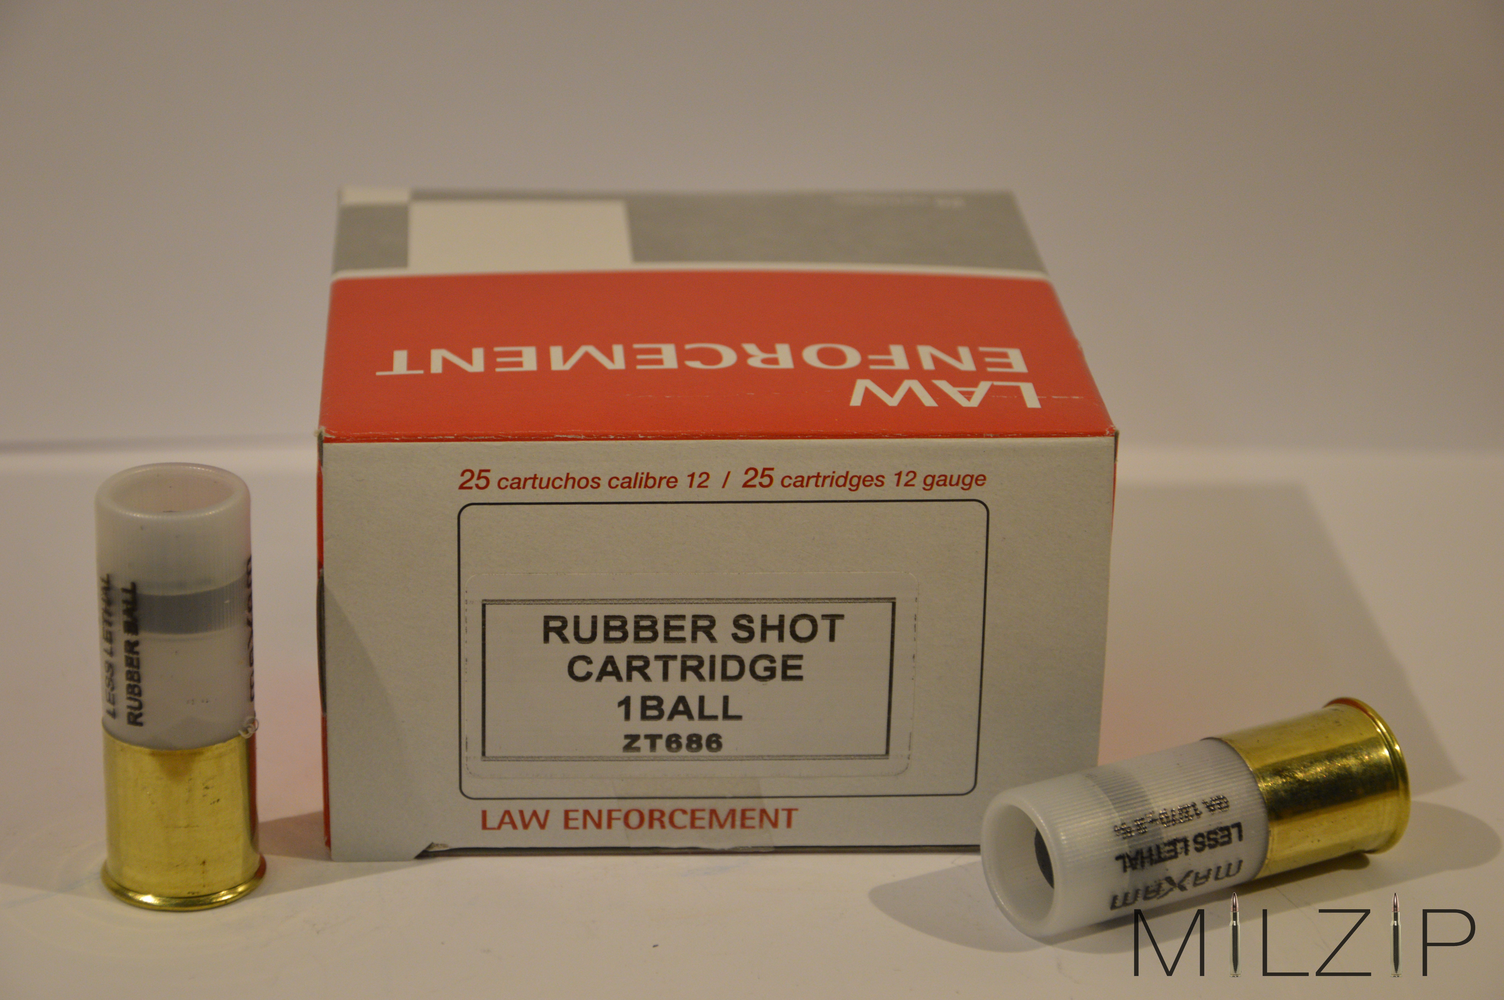 Law Enforcement Rubber Shot Gummischrot 12/70 mit 1 Kugel